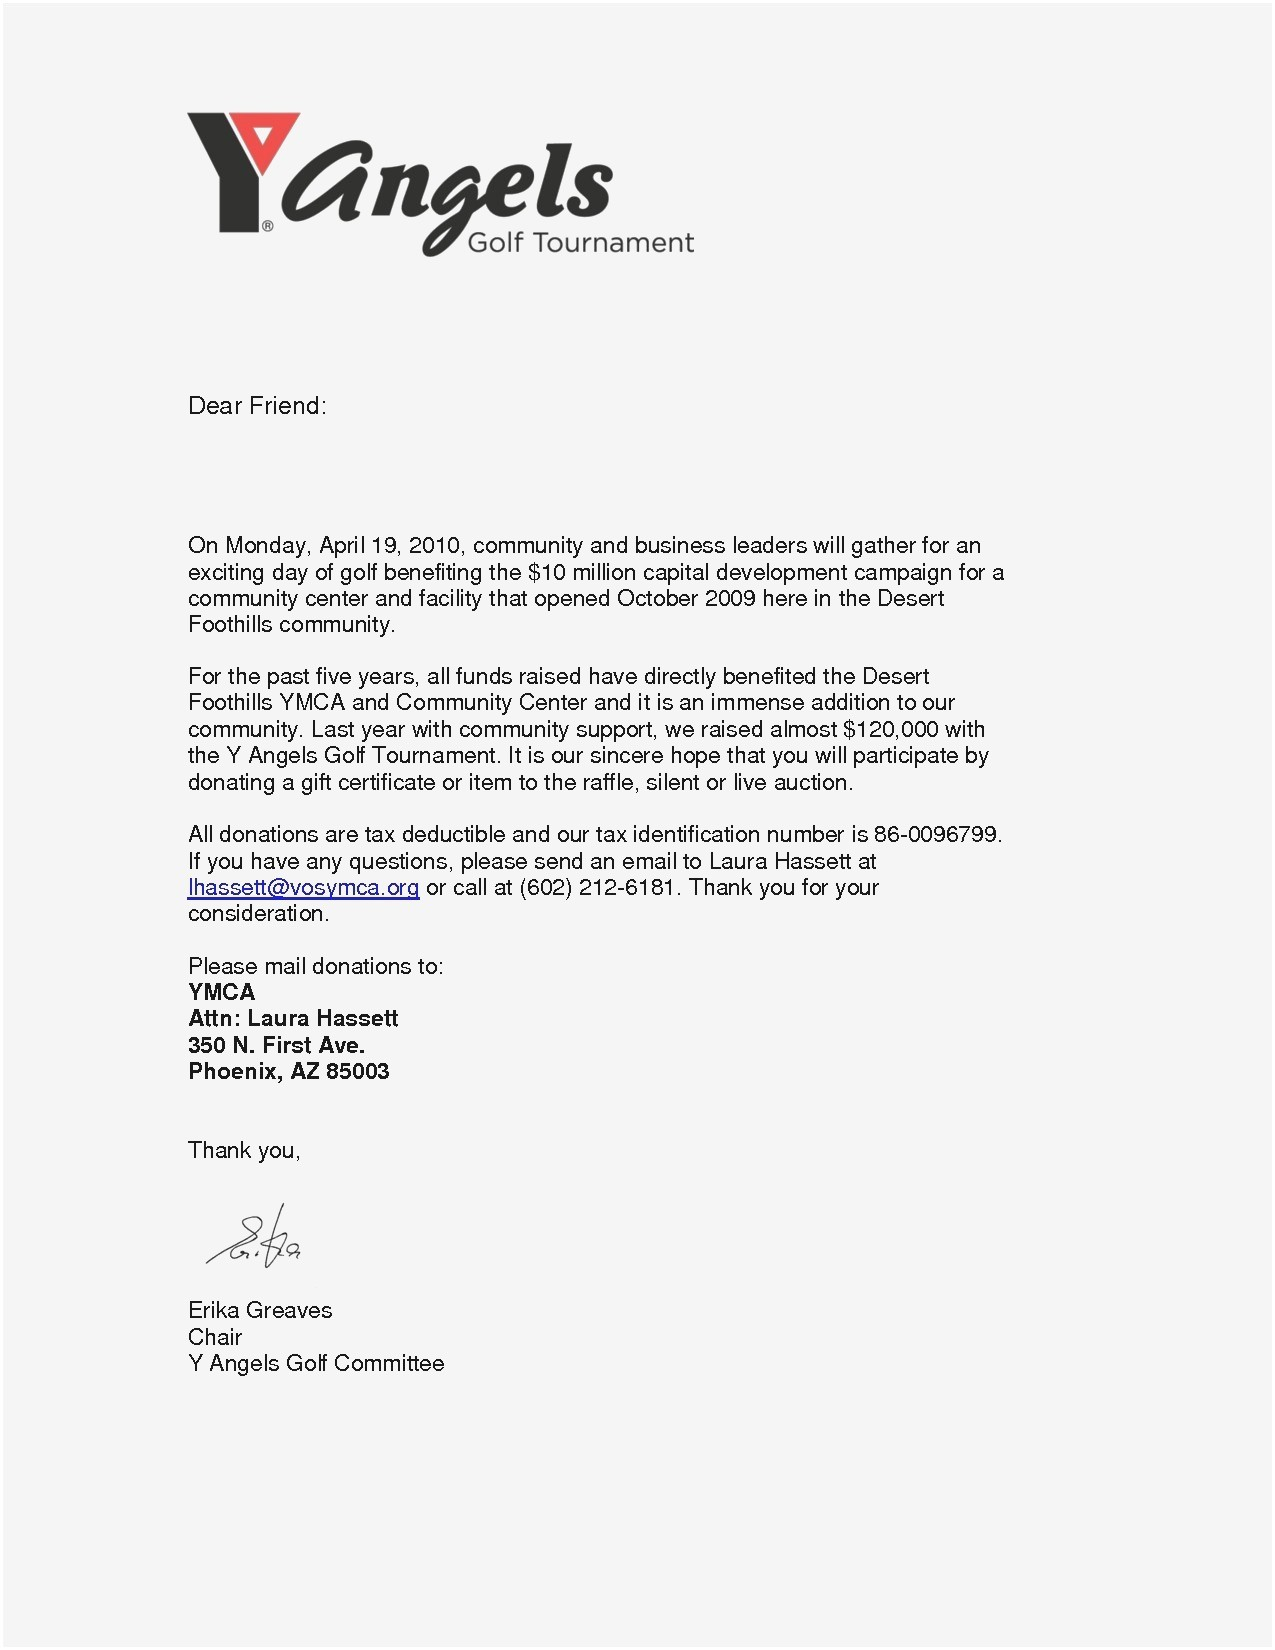 Golf tournament Donation Letter Template - Donation Request Letter Template